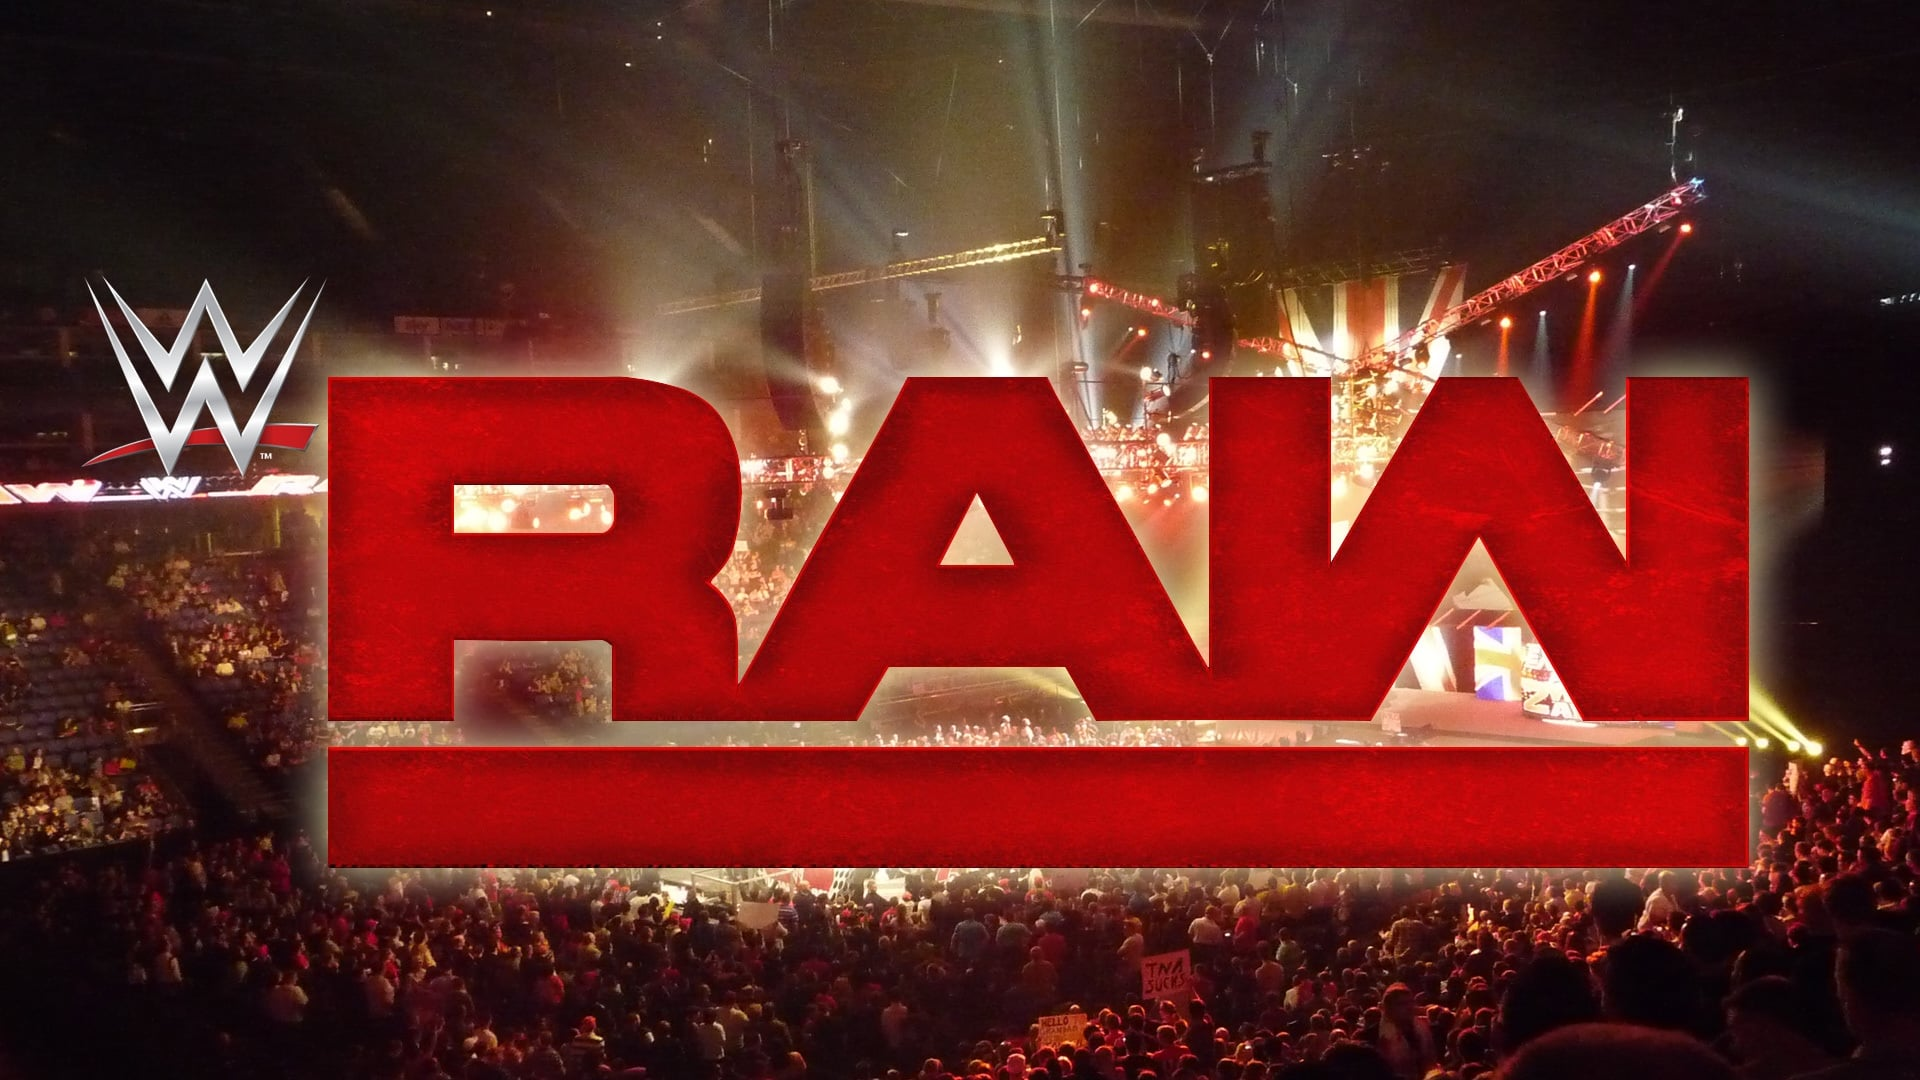 WWE Raw - Season 8 Episode 36 : RAW is WAR 380